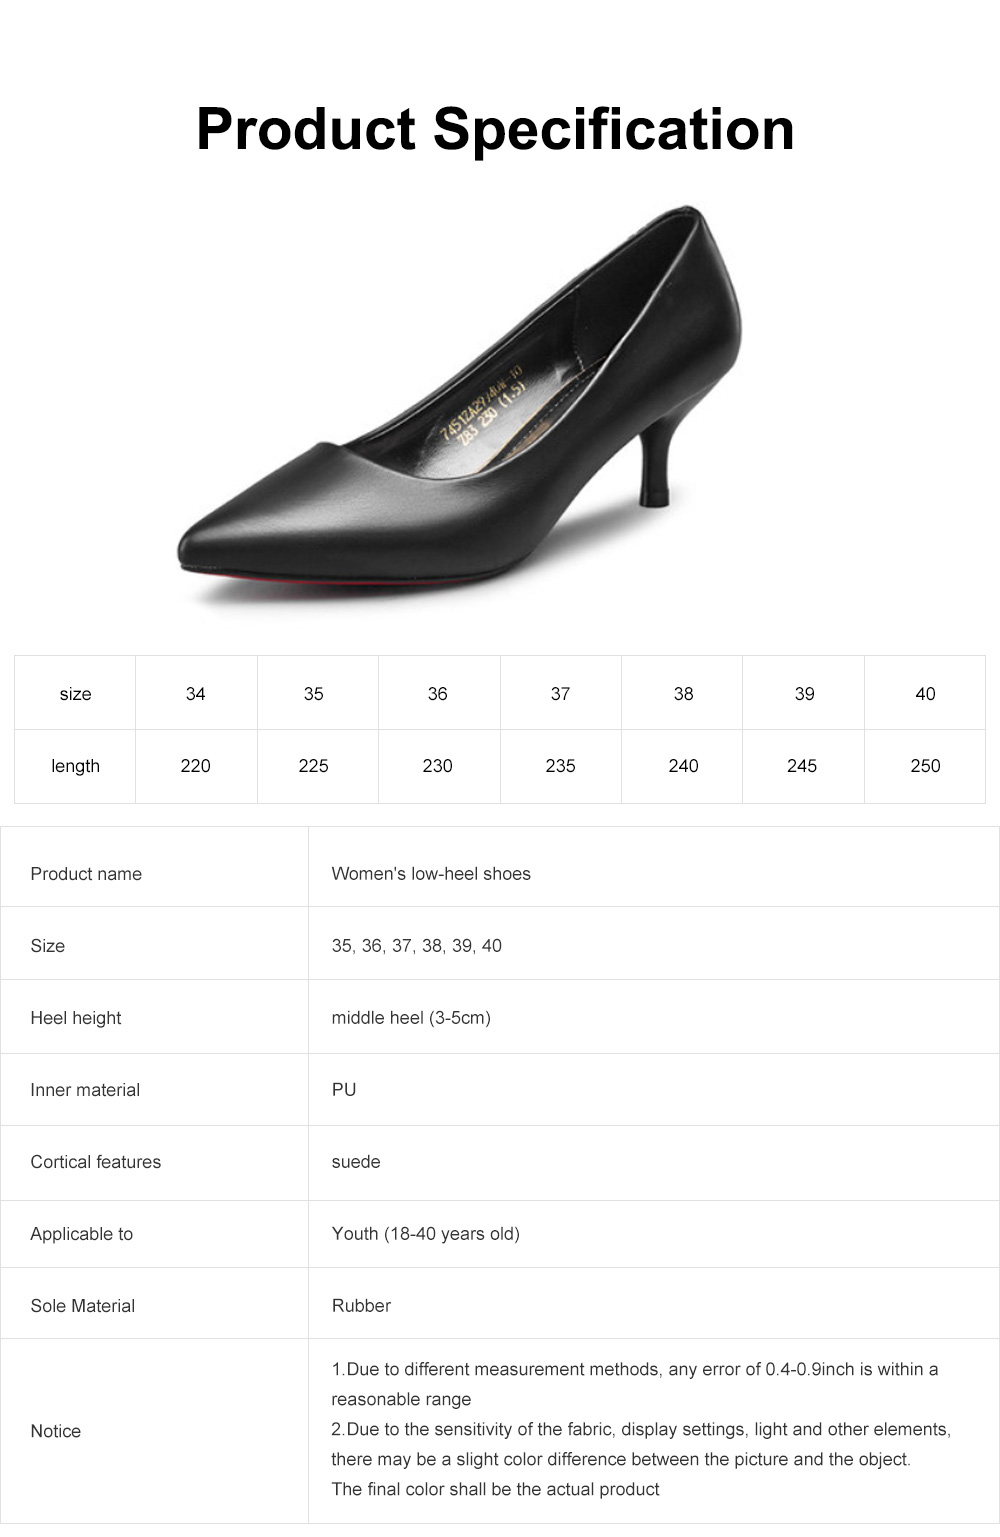 Women's Low-heel Shoes, Comfortable Pointed Toe Casual Synthetic Leather Pumps Shoe, Fashion Slim Heel Office Shoes 6